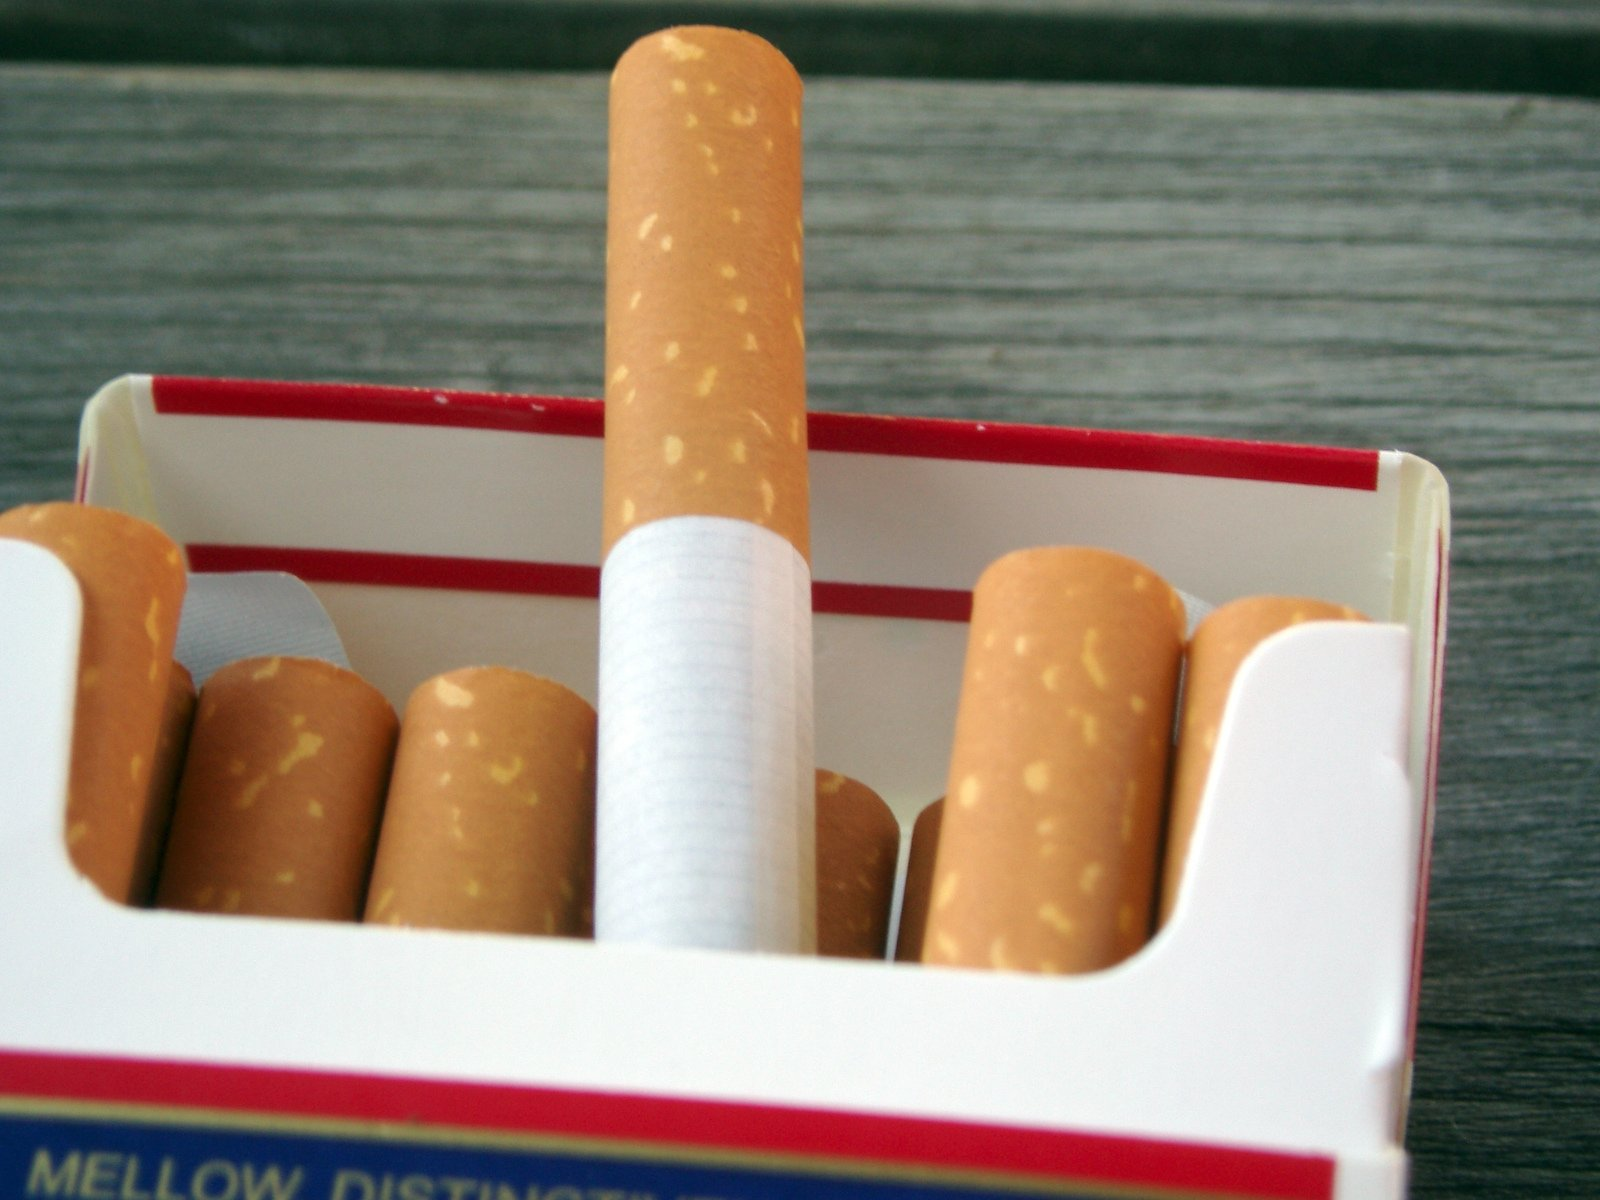 Most Corner Stores Check Age For Cigarettes: Province